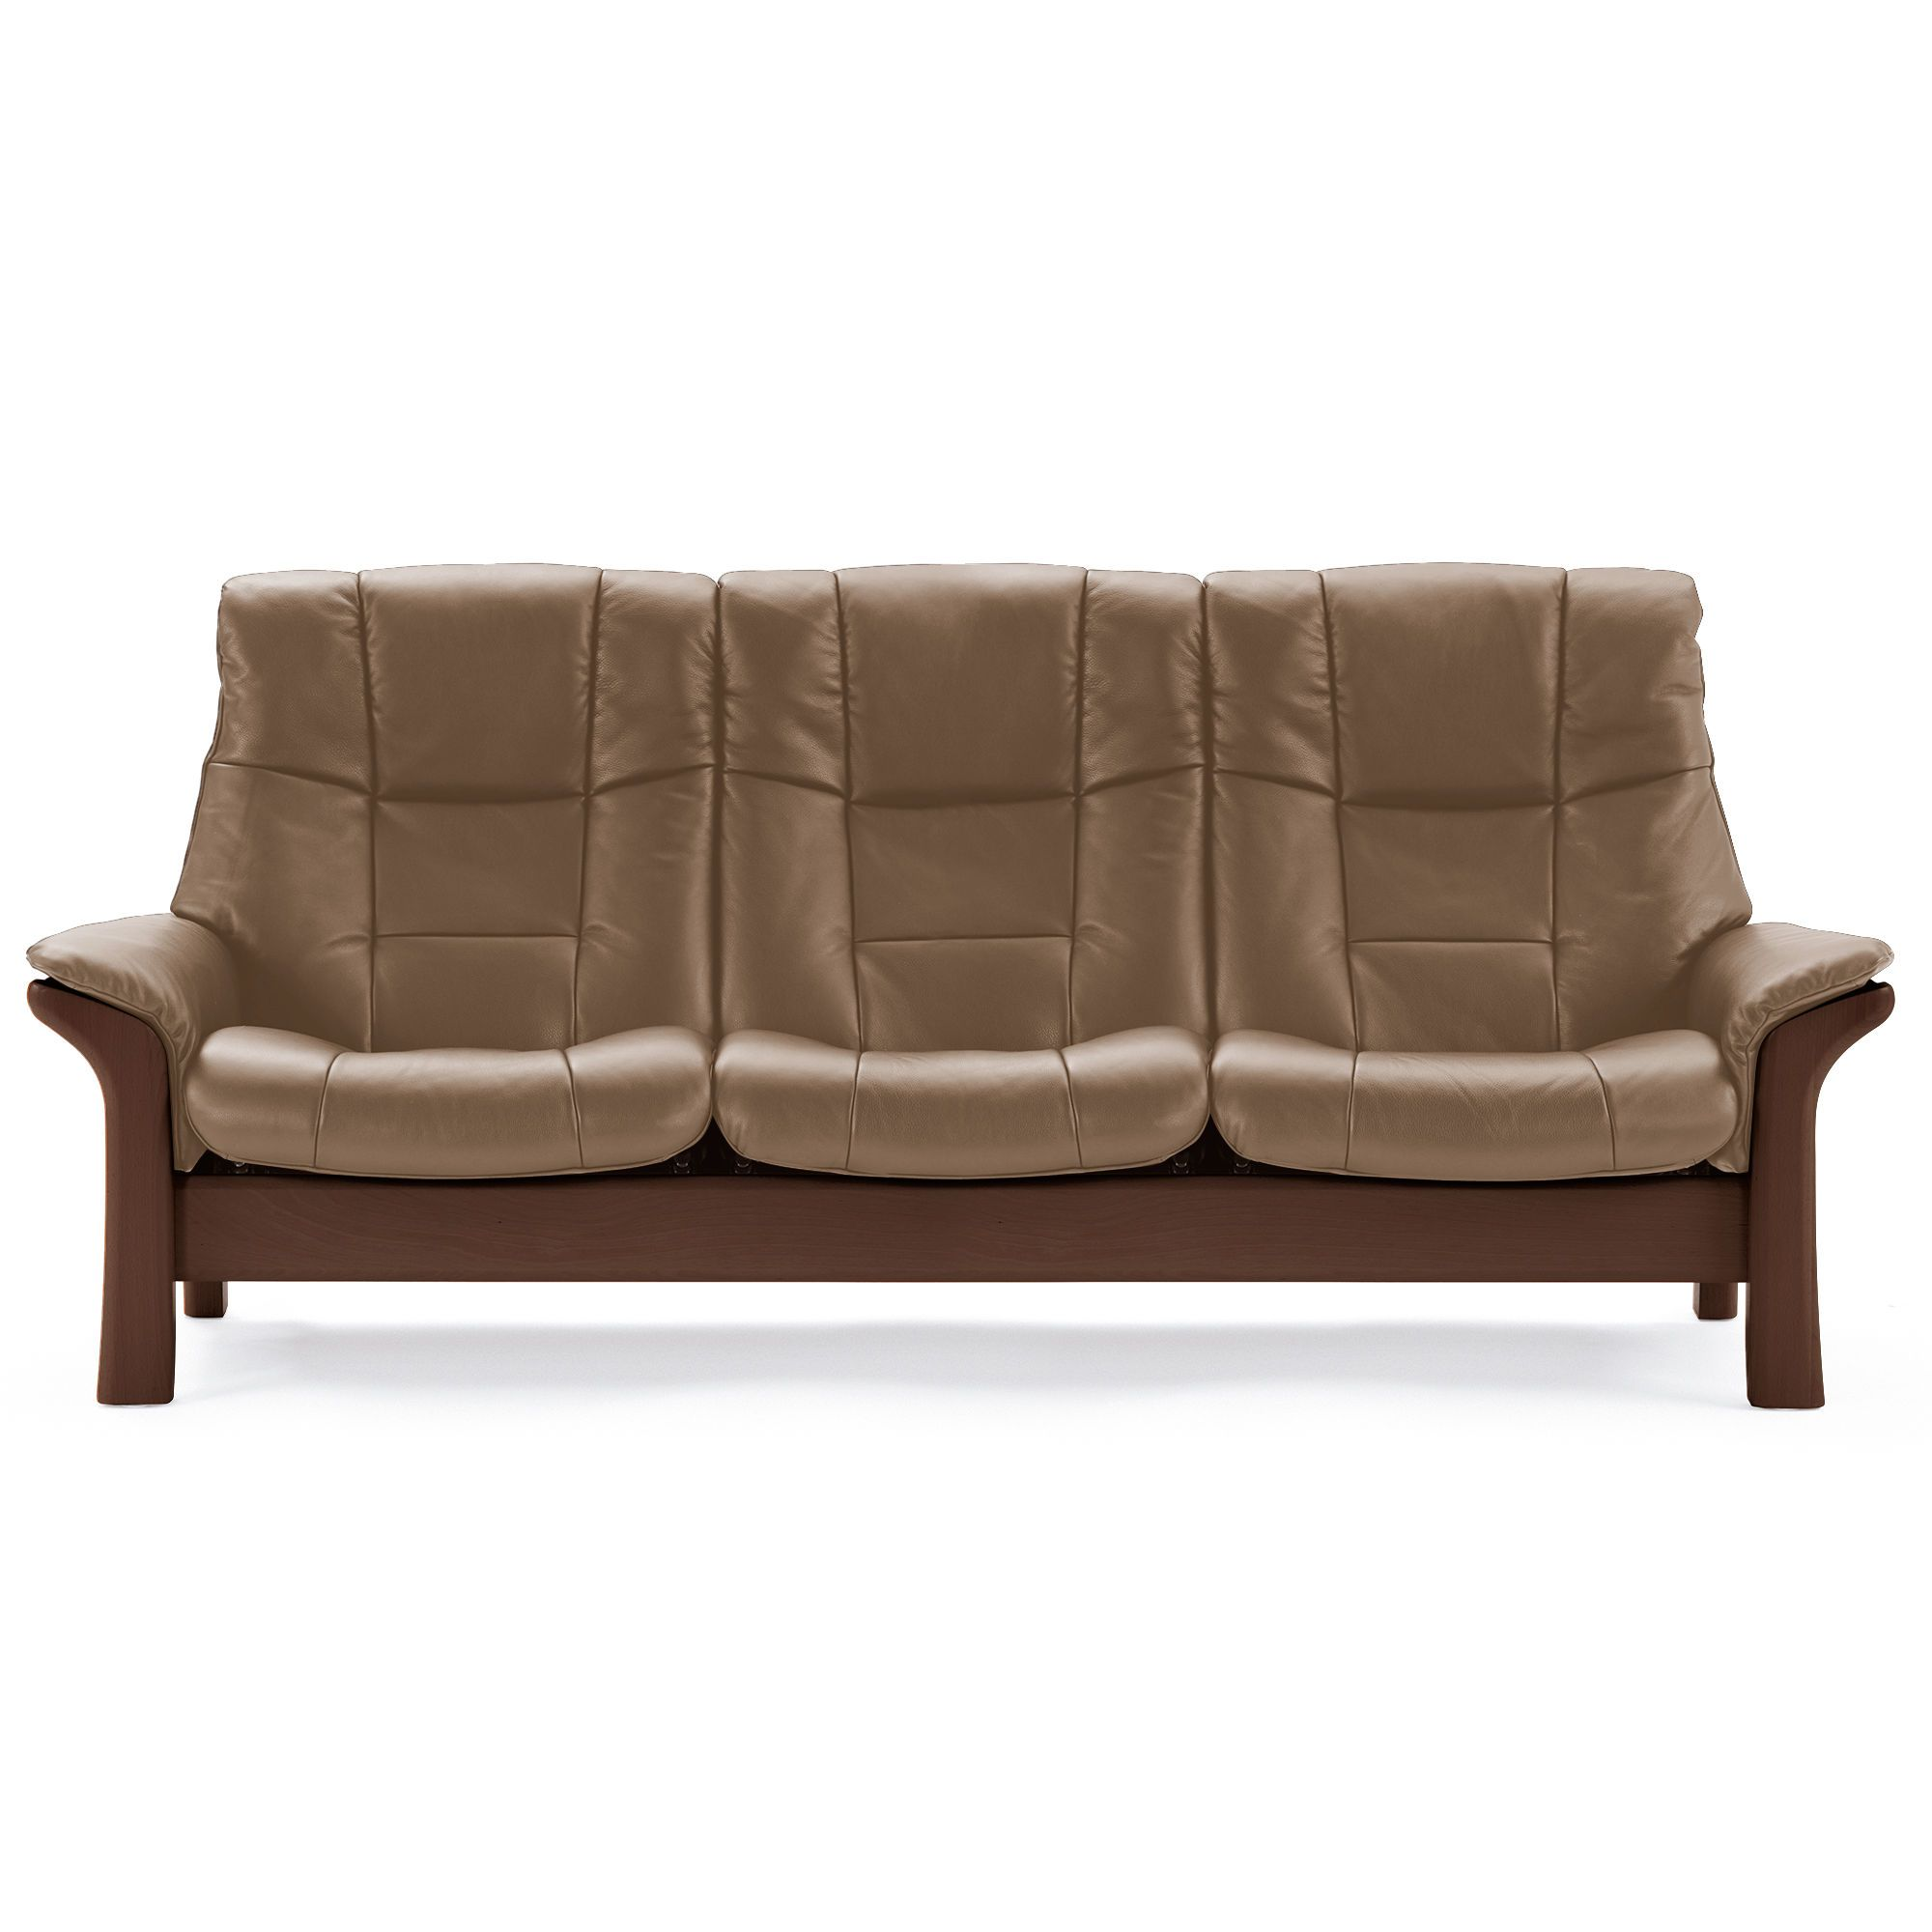 Ekornes Stressless Buckingham Sofa Stressless Buckingham Sofa Highback By Ekornes Living